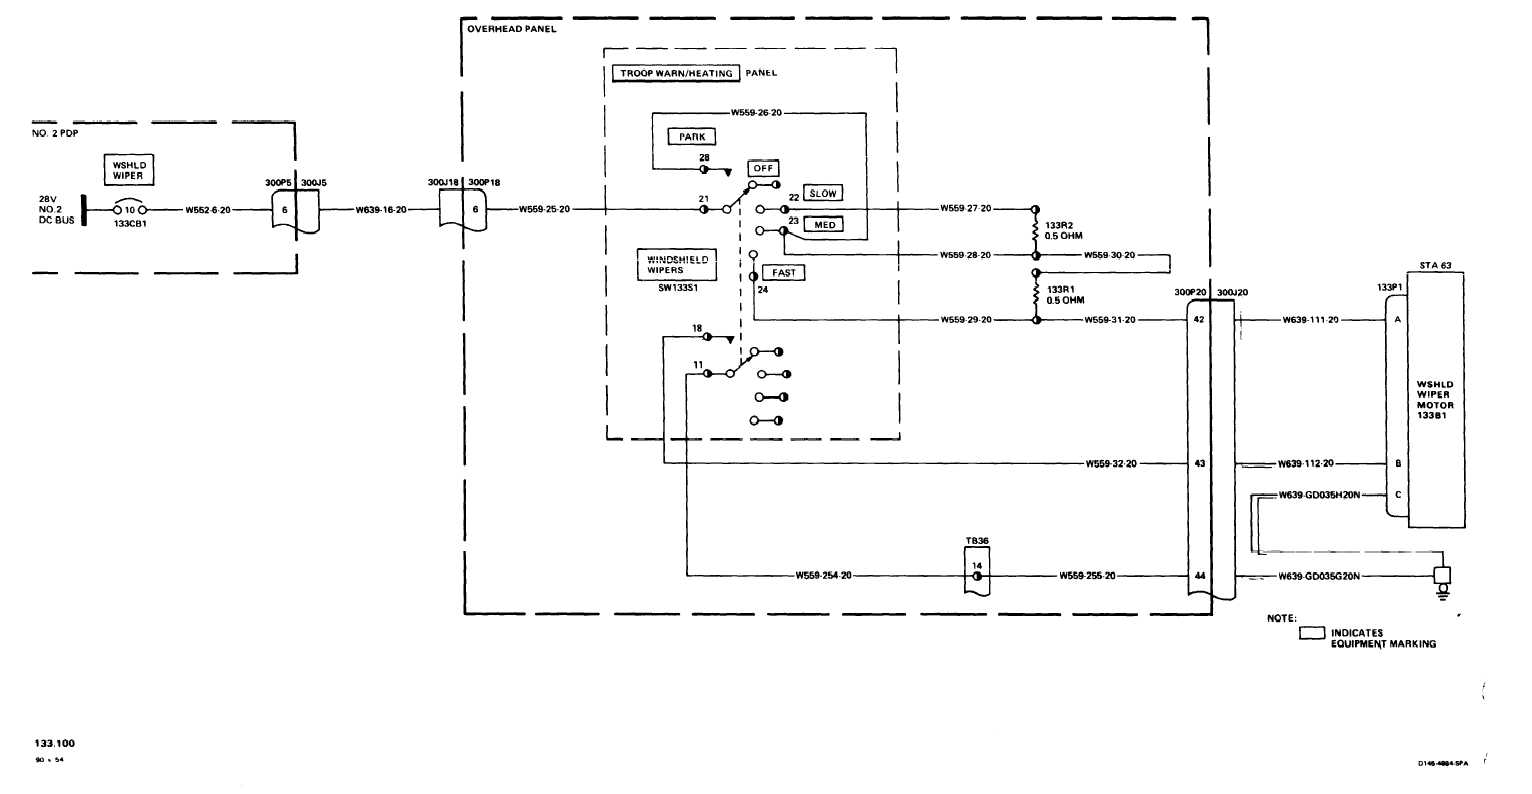 TM 55 1520 240 T 3_590_1 wiper wiring diagram f100 wiper motor wiring diagram \u2022 wiring 1999 ford explorer rear wiper wiring diagram at cos-gaming.co